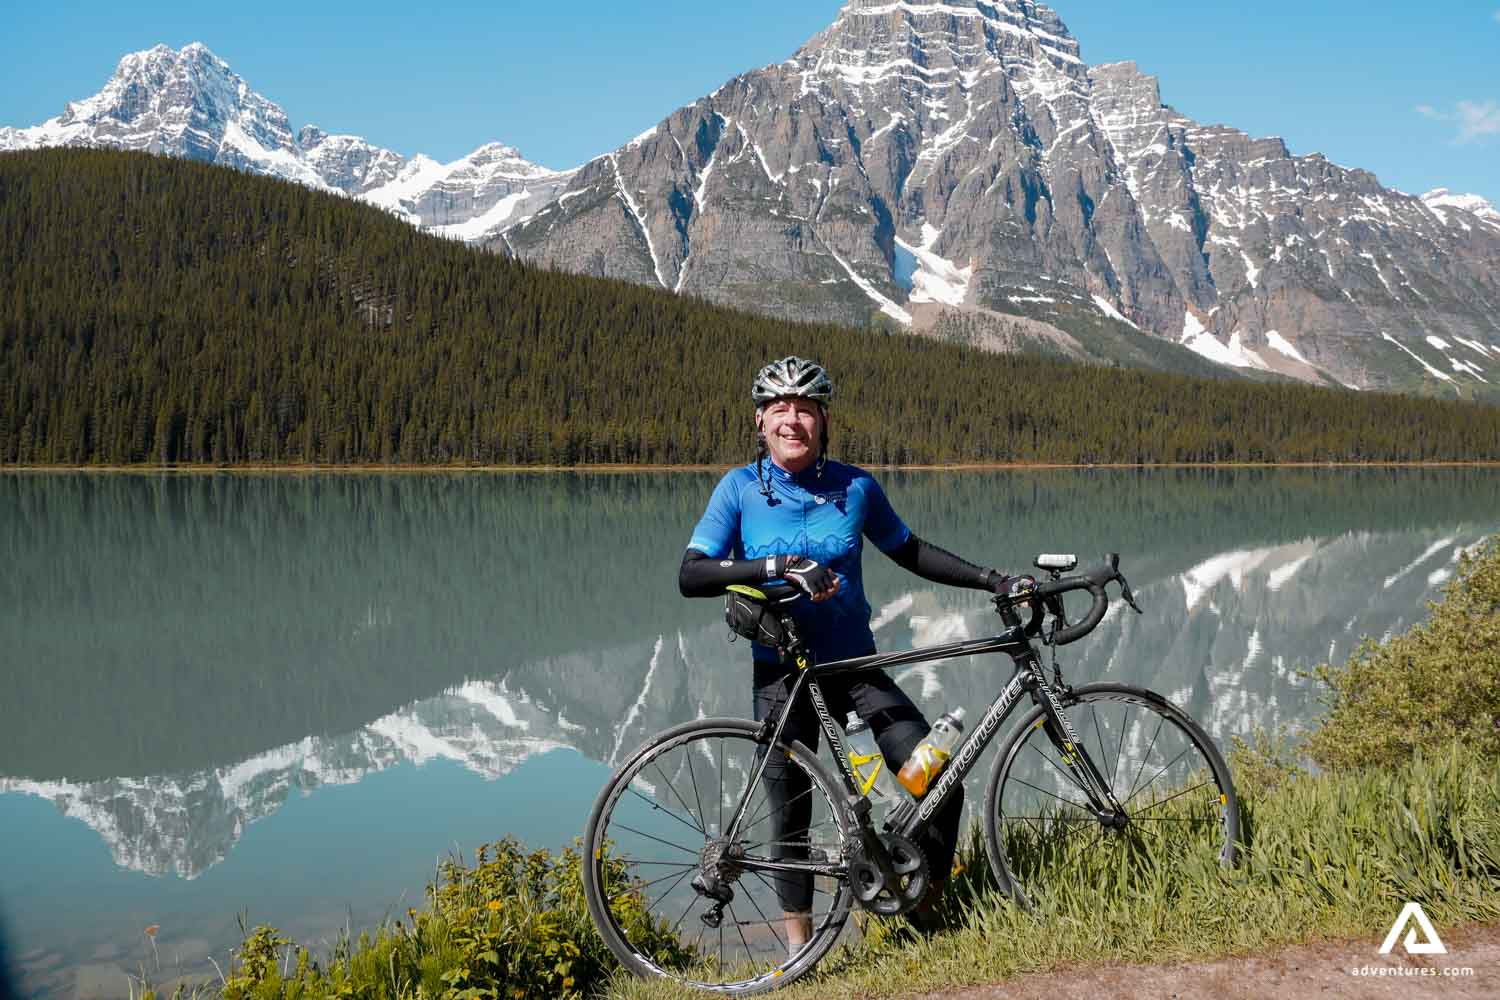 Man with a bicycle in rocky mountains